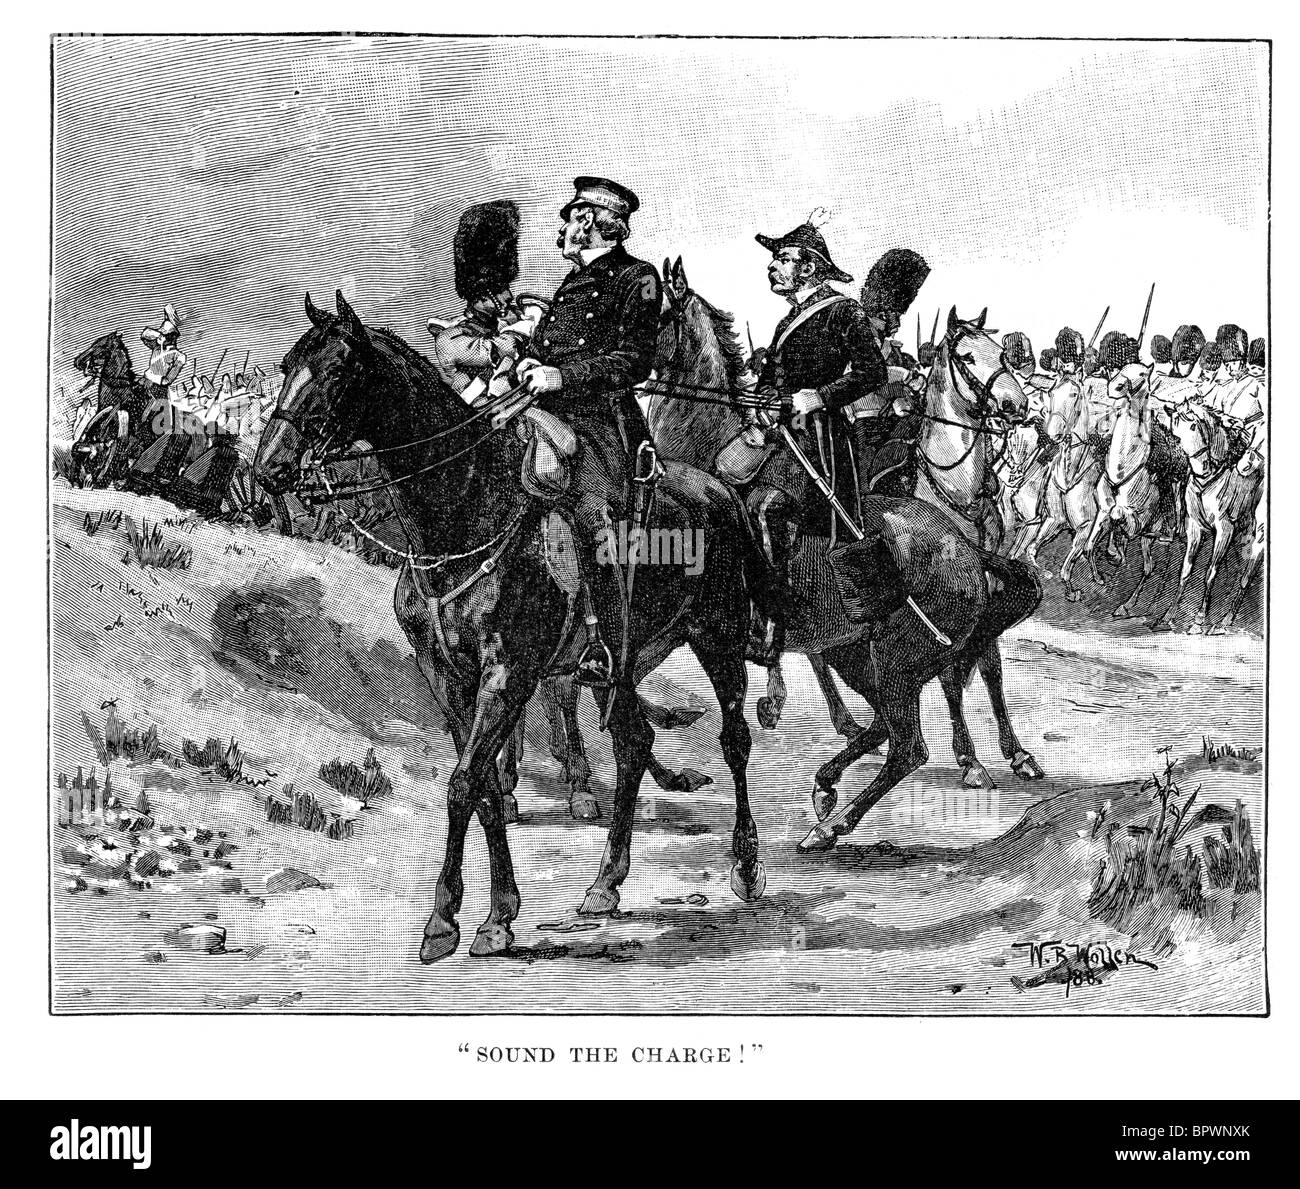 General Sir James Yorke Scarlett leading the 5th Dragoon Guards during the Battle of Balaklava Crimean War - Stock Image